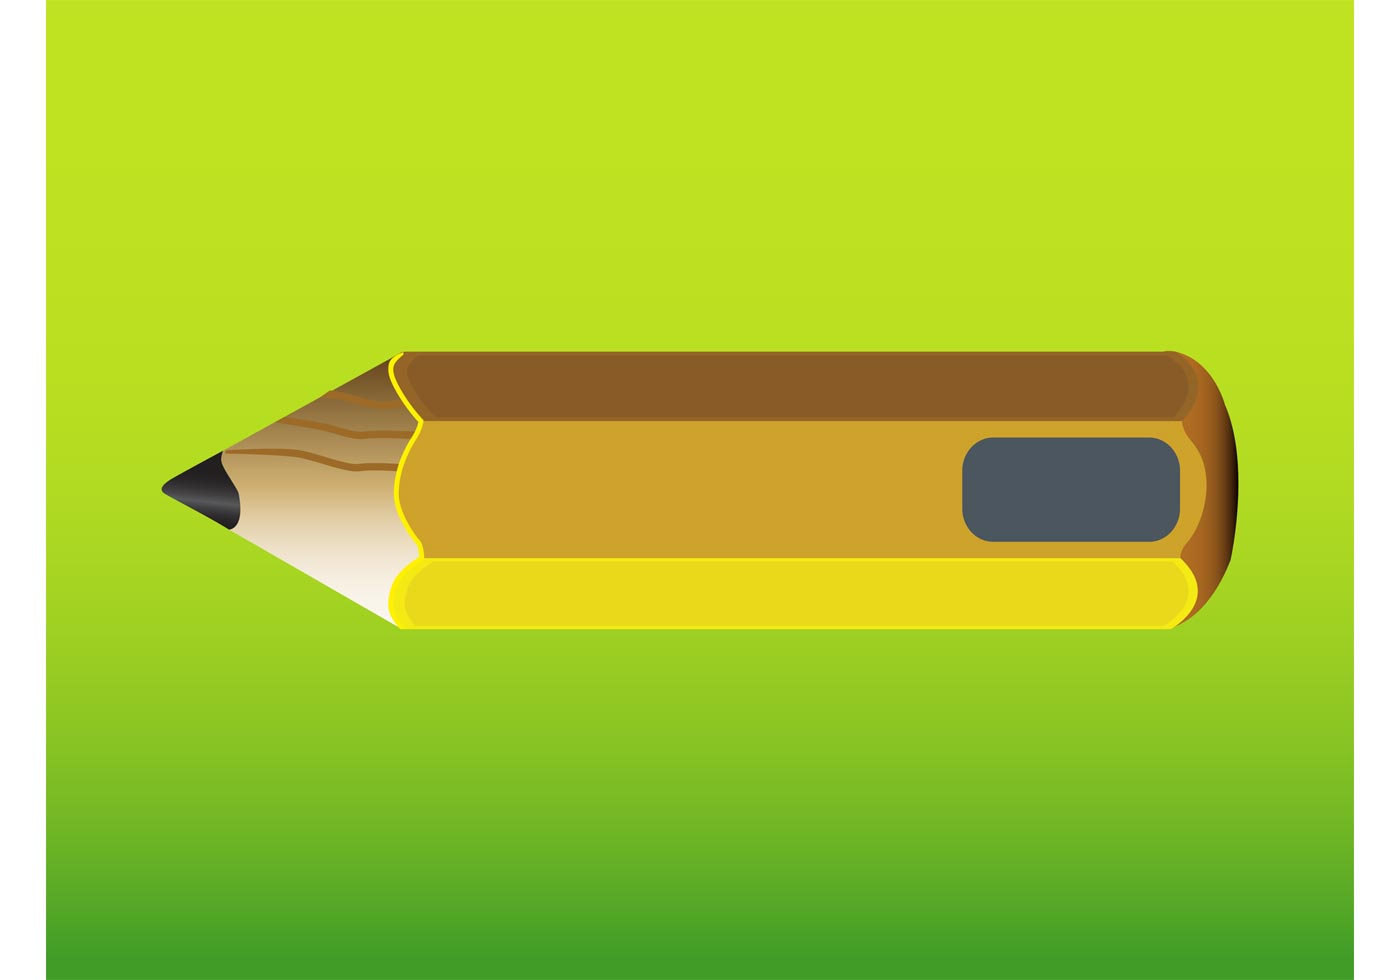 Pencil Icon - Download Free Vector Art, Stock Graphics ...